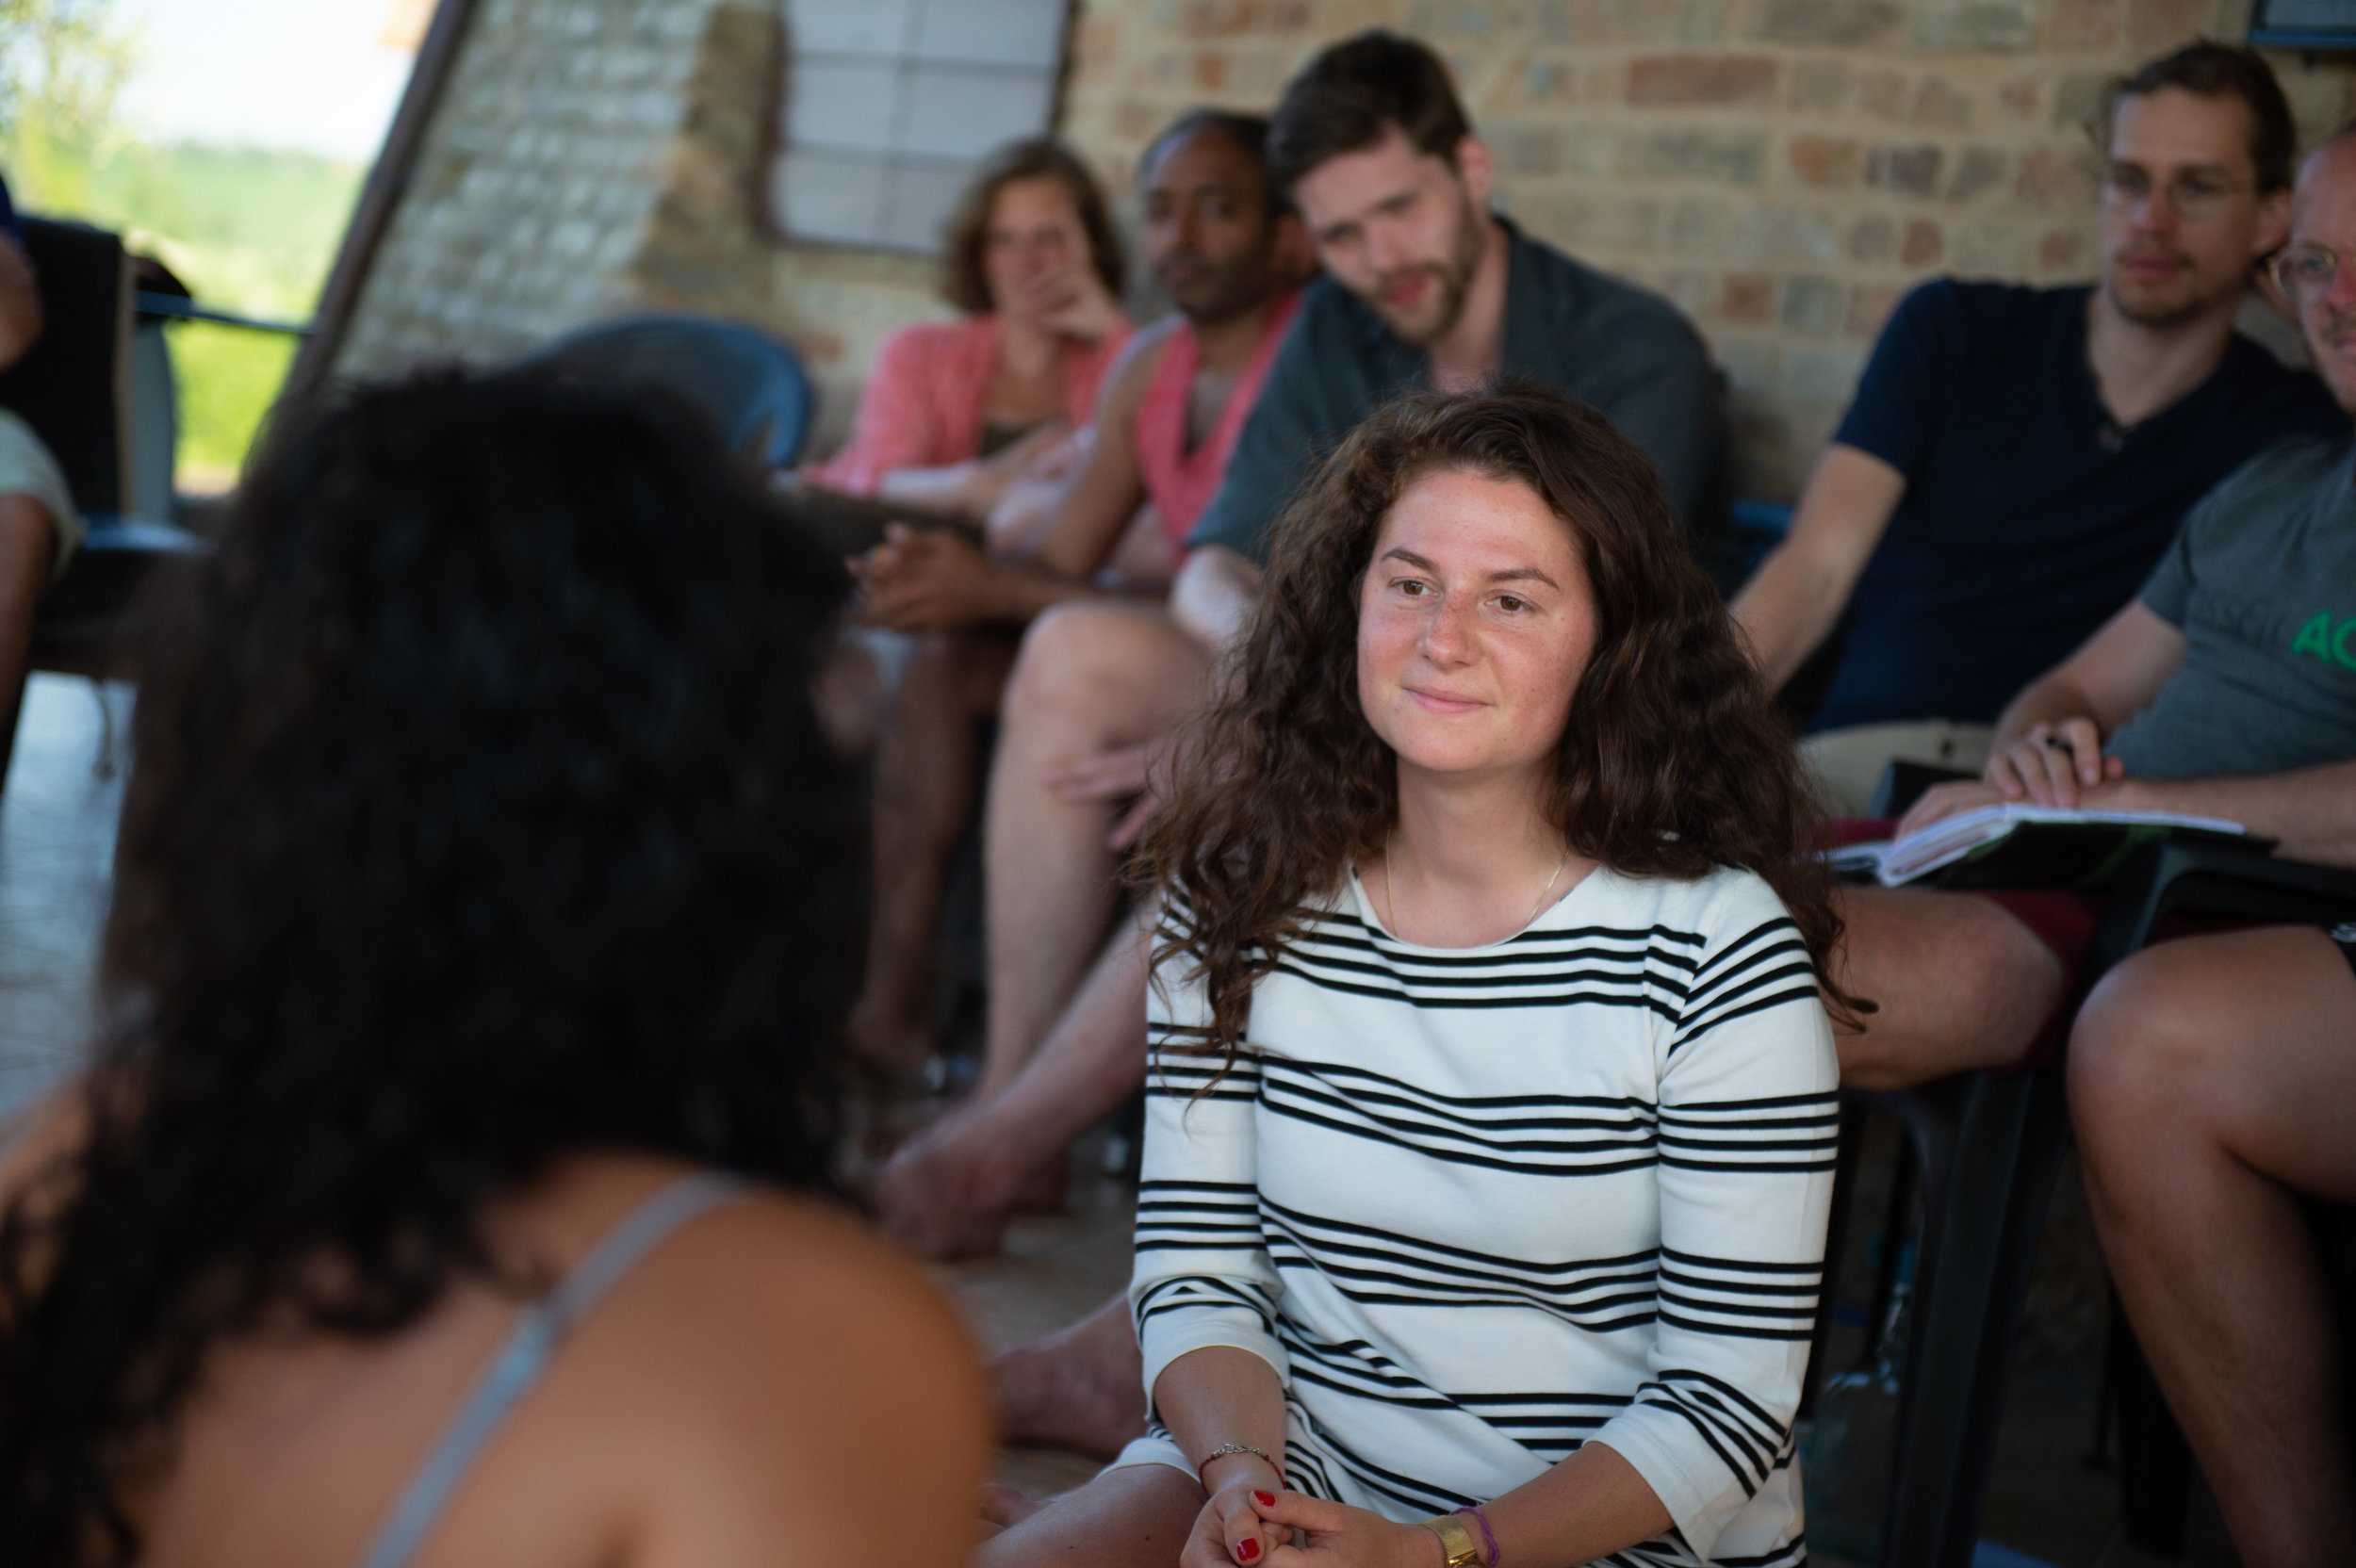 Friday: Warming Up - We gather and introduce ourselves, share how we're making ourselves nervous and excited about the weekend, and what we want to get out of it. We do some paired exercises, experimenting with Radical Honesty.